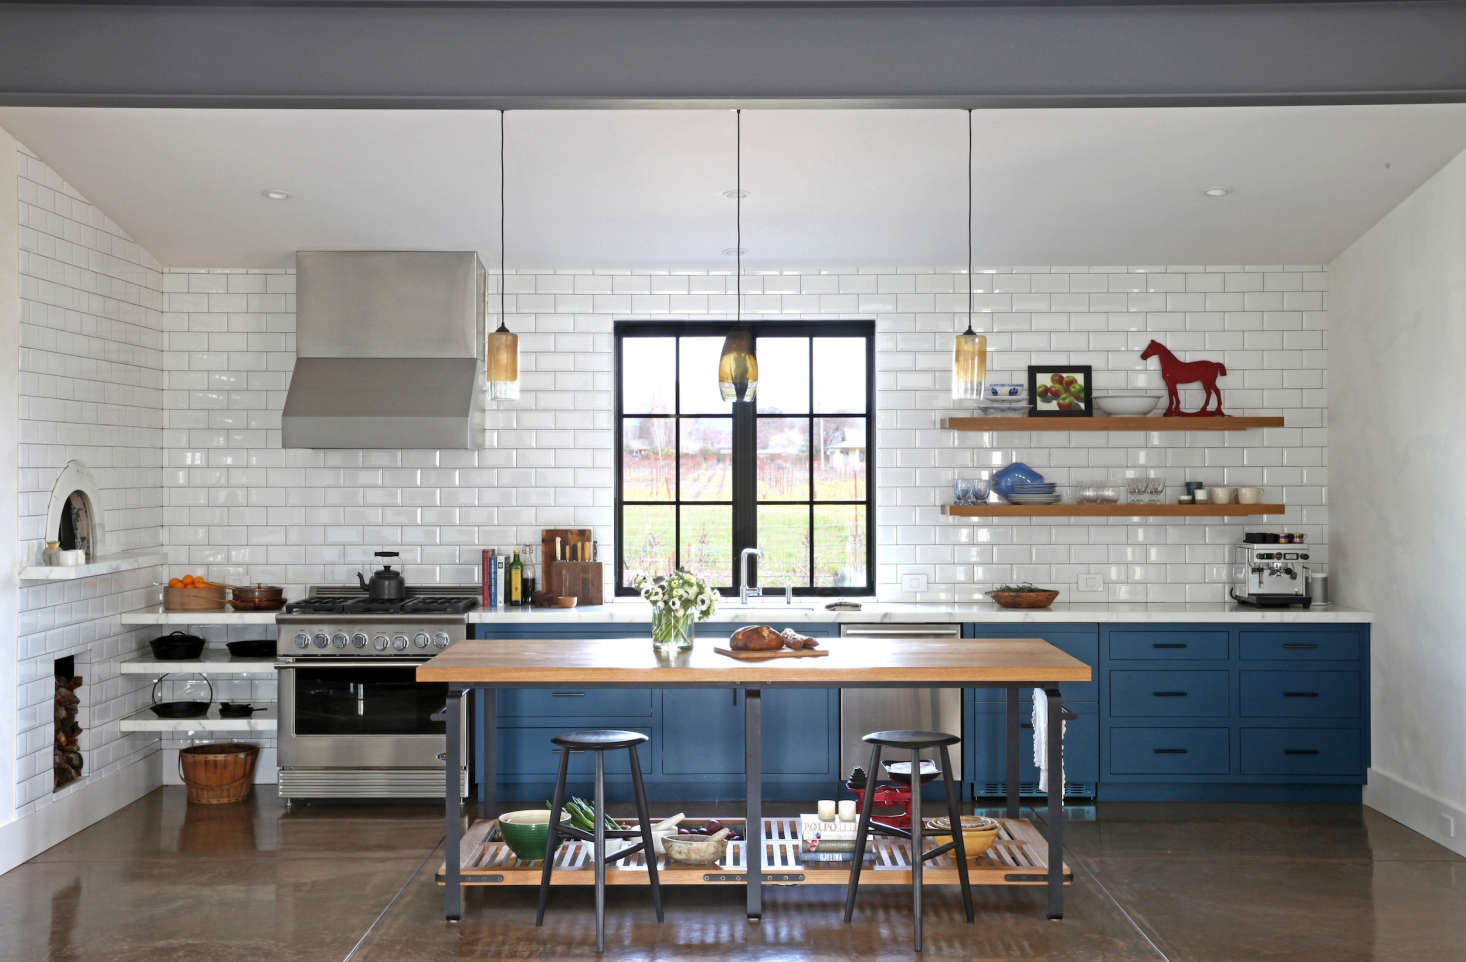 - Remodeling 101: What To Know When Replacing Your Range - Remodelista